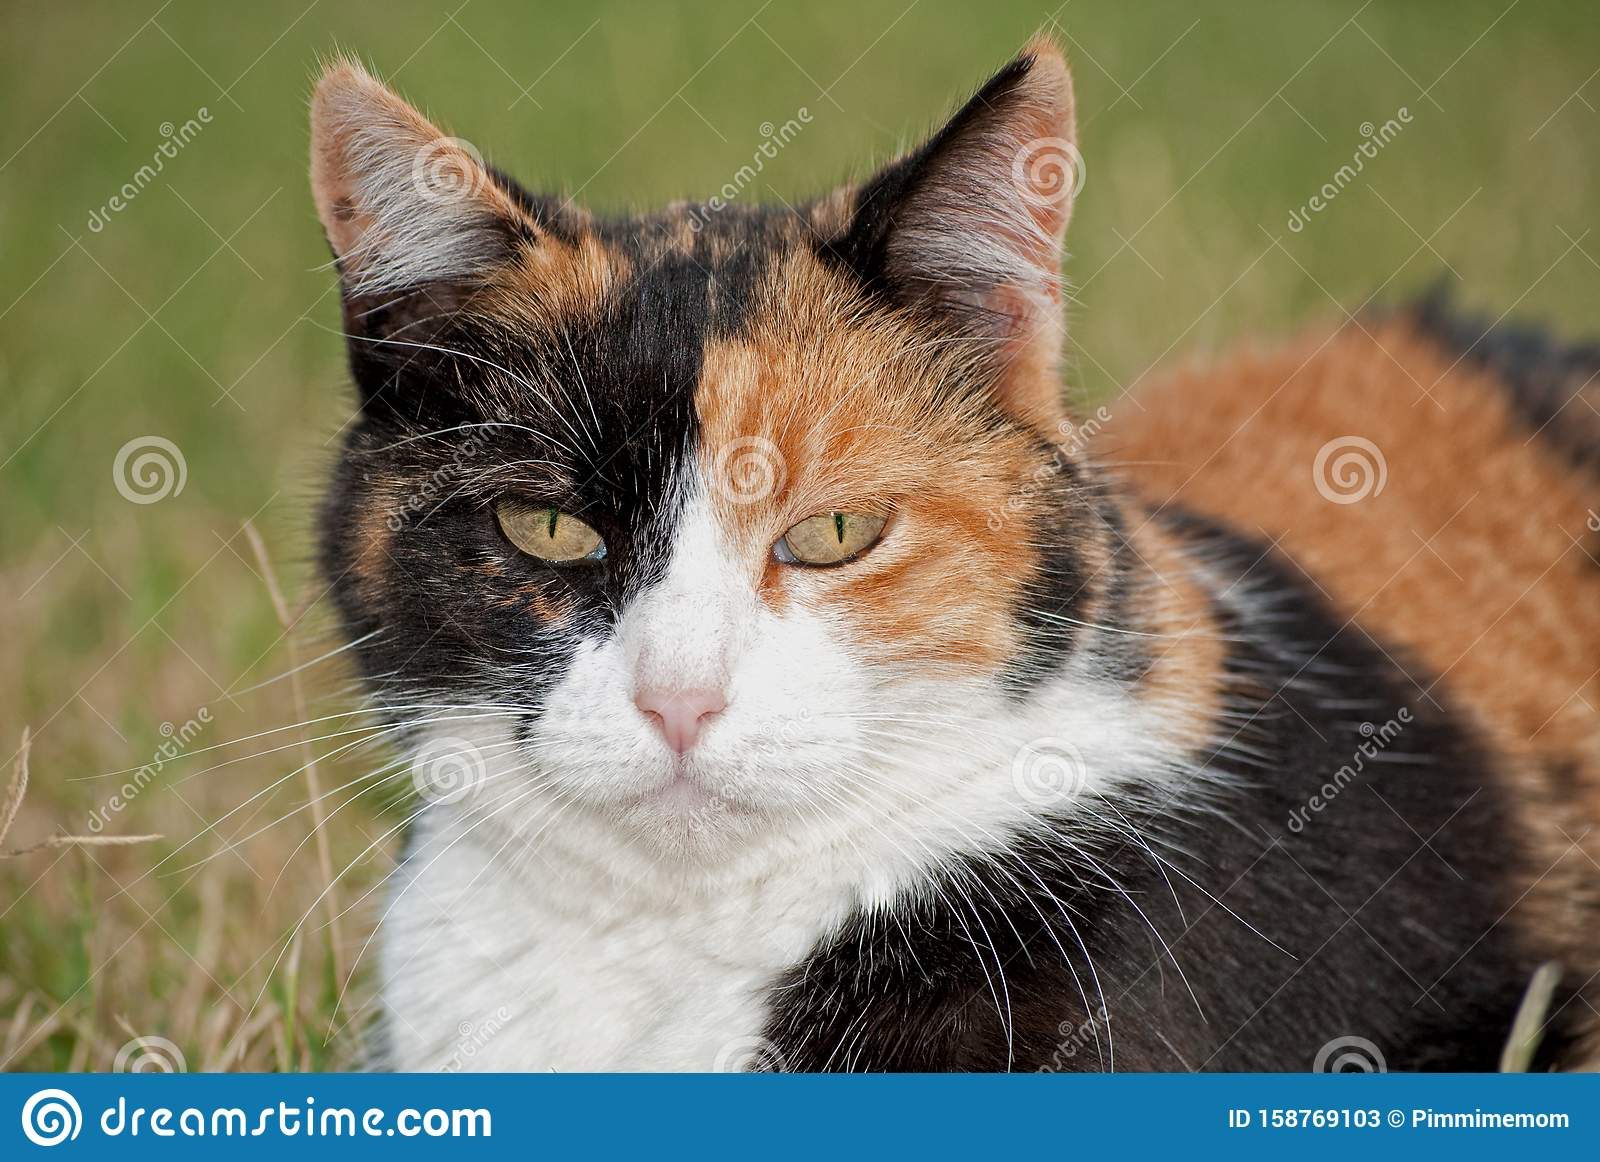 Calico Cat With Different Color Face Halves Stock Image Image Of Tortie Tricolor 158769103